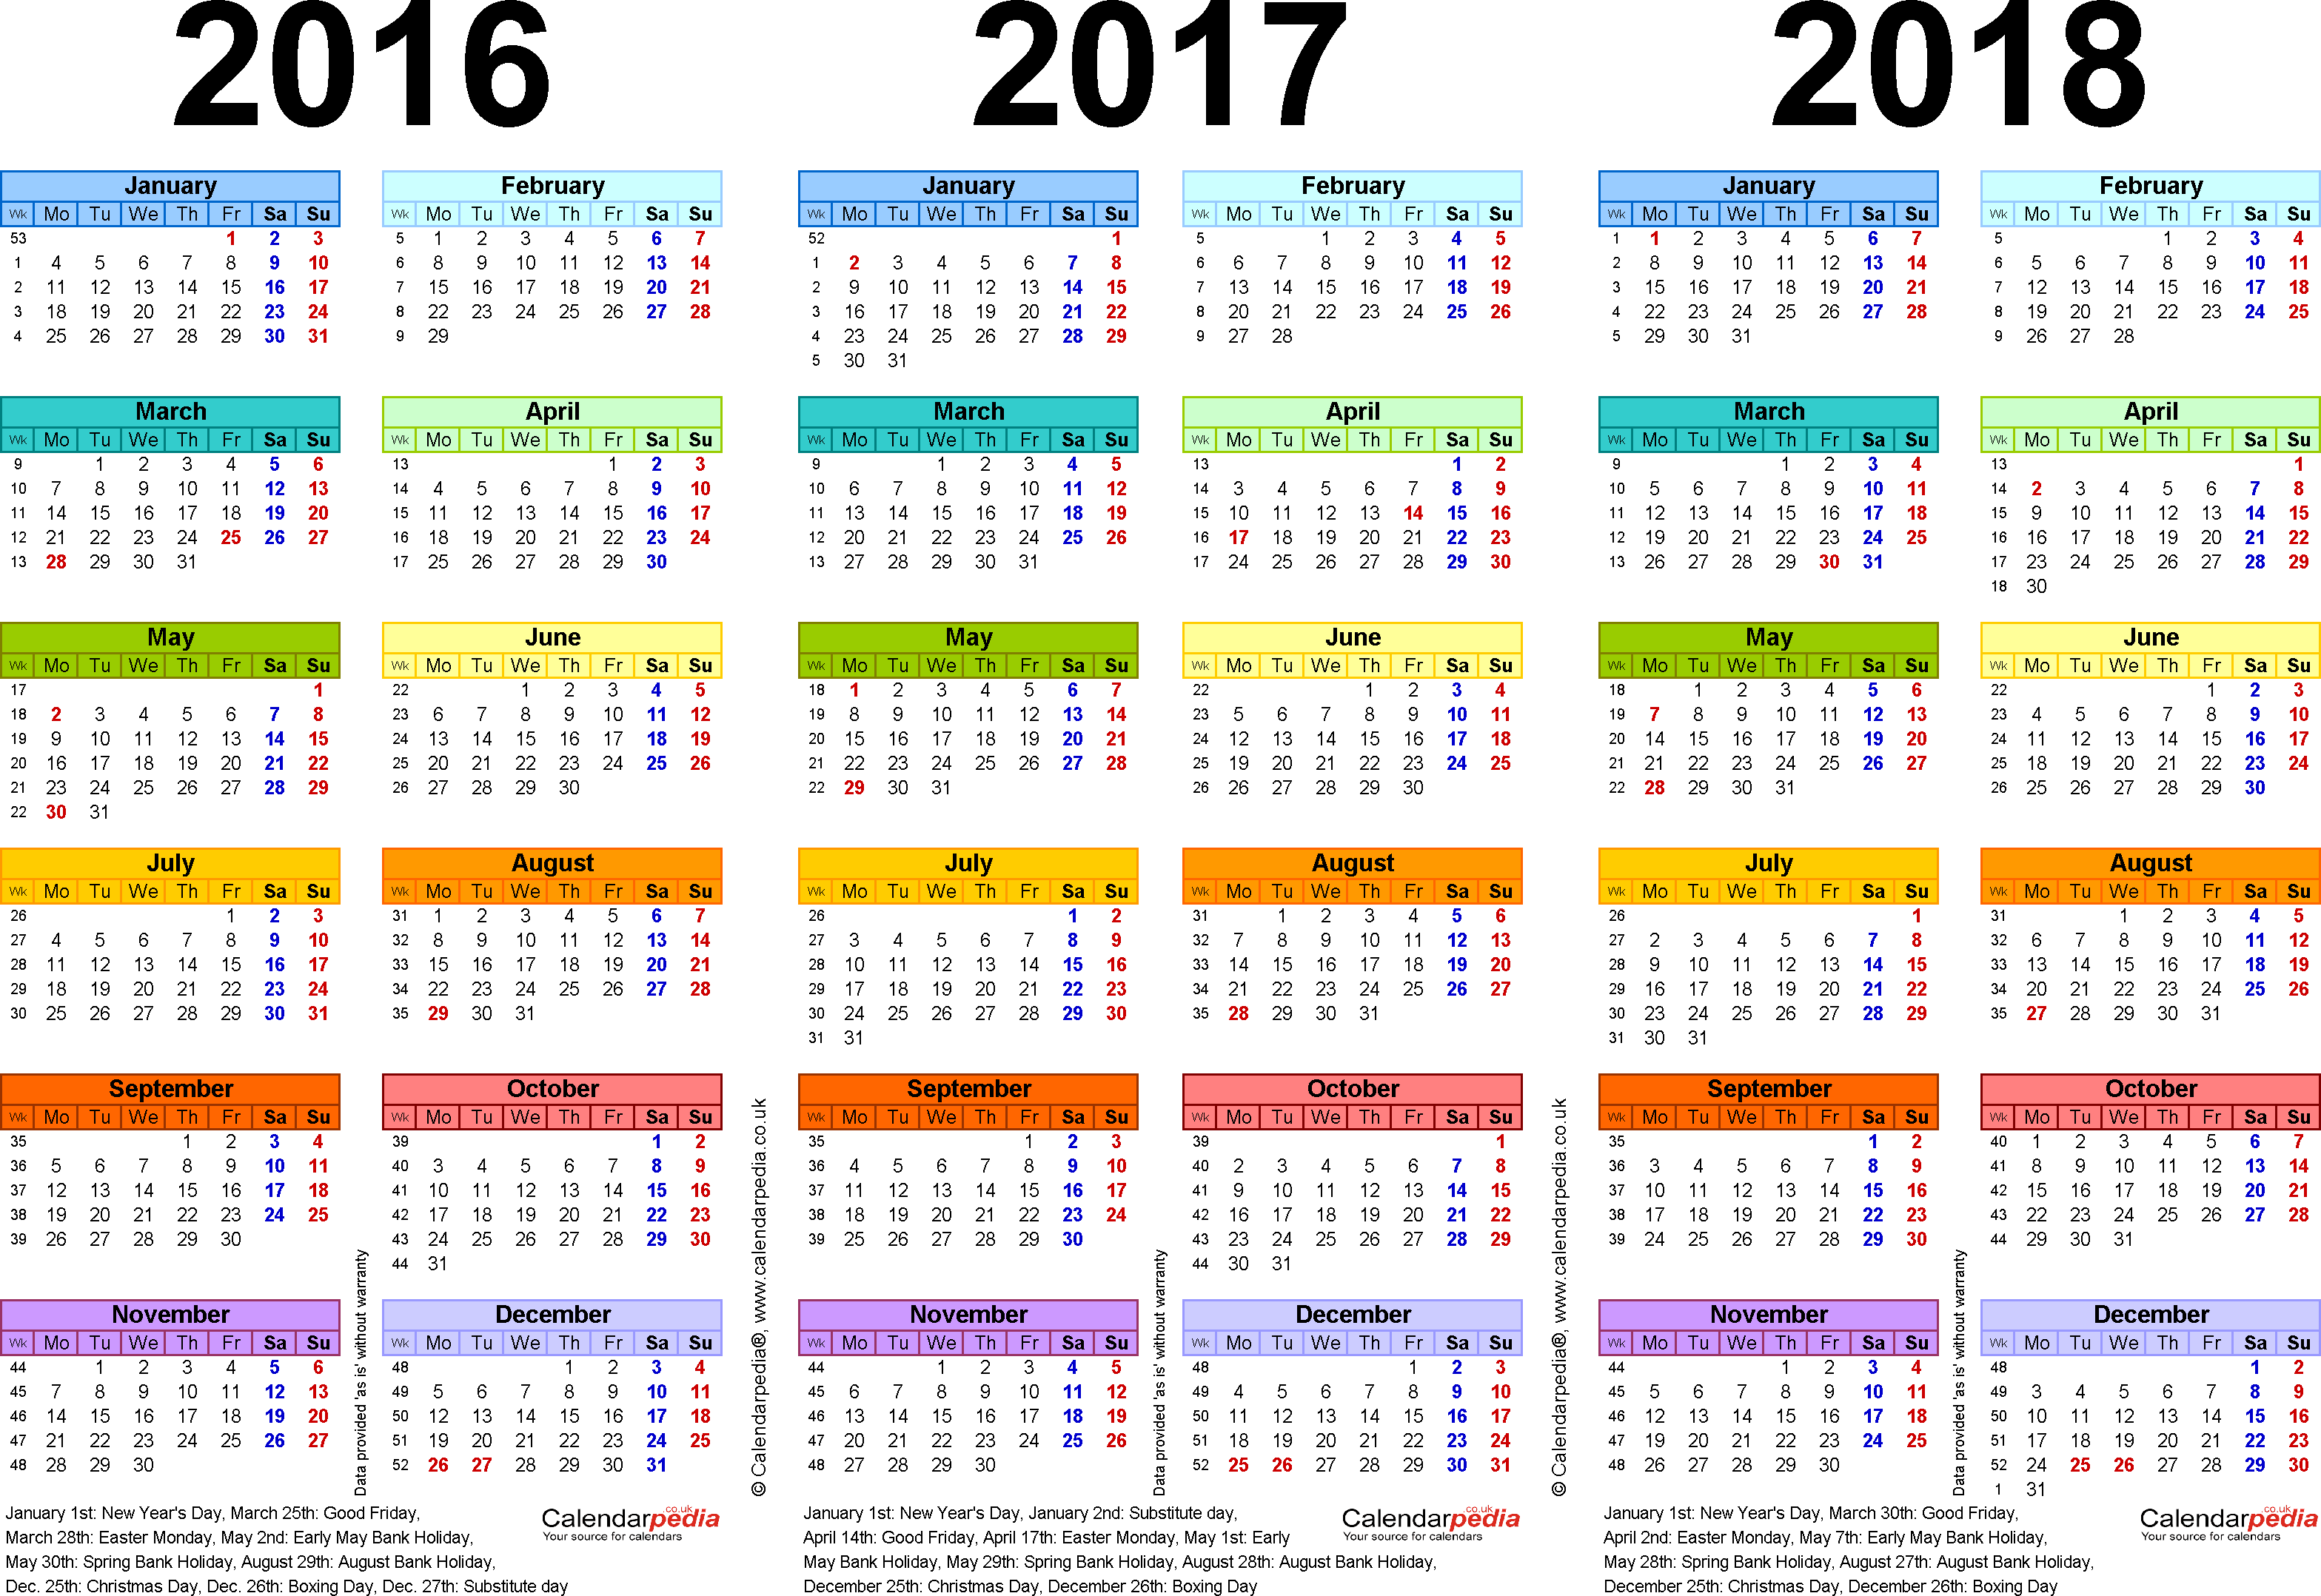 Template 1: Excel template for three year calendar 2016-2018 in colour (landscape orientation, 1 page, A4)